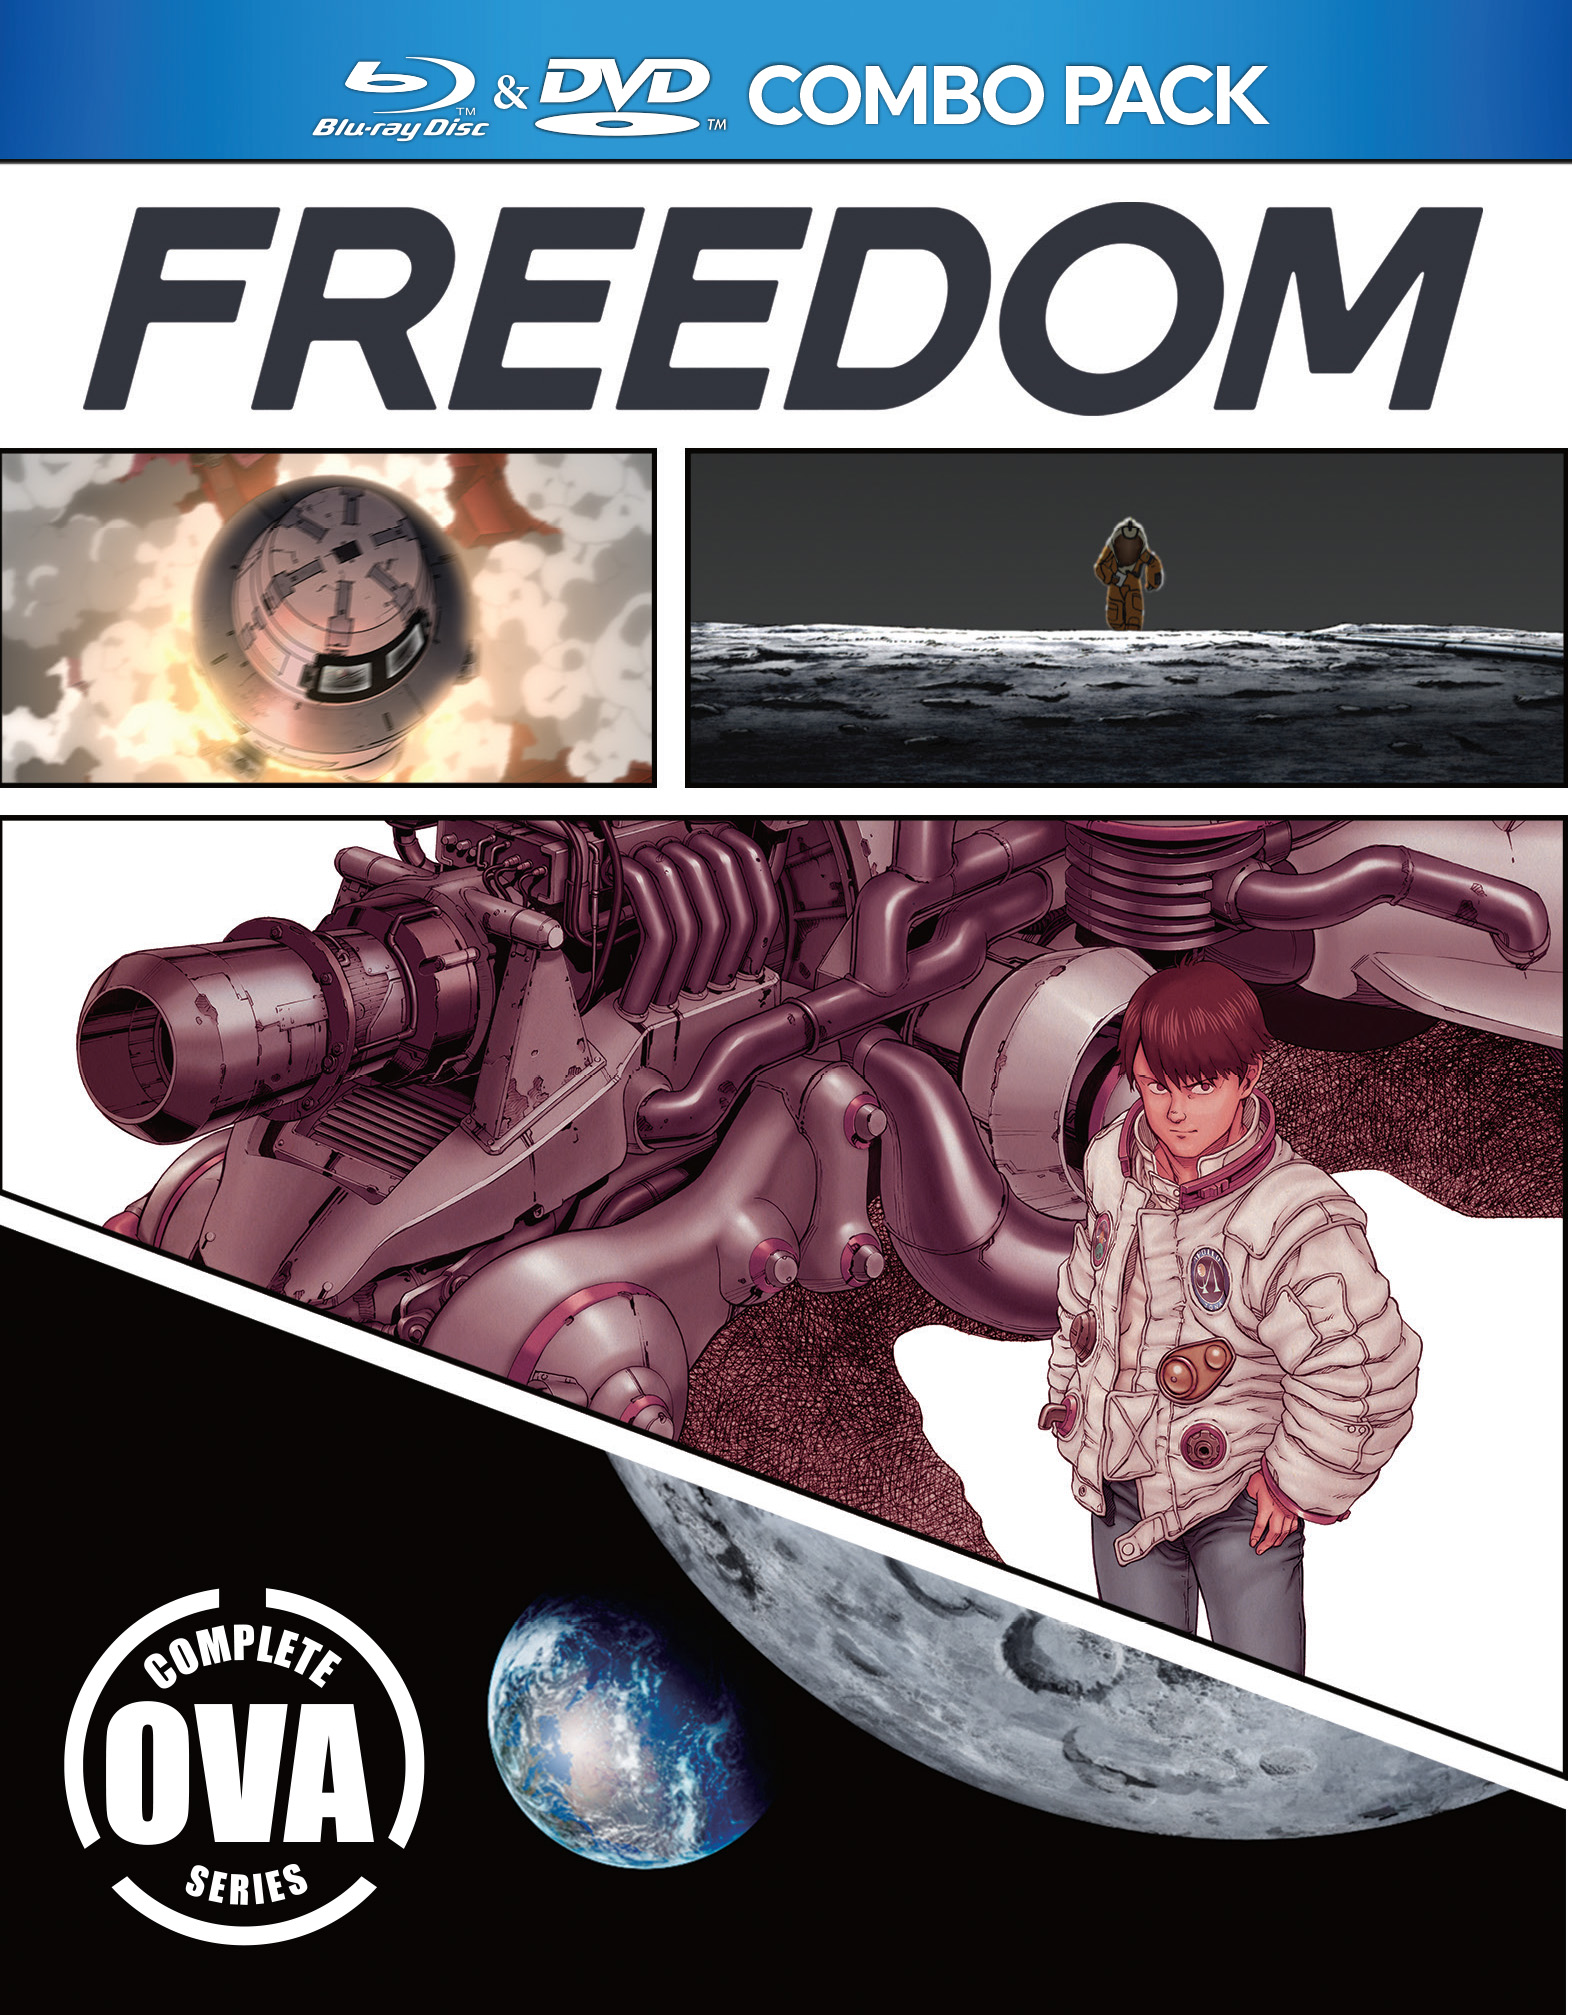 Freedom OVA Blu-ray/DVD 875707139090